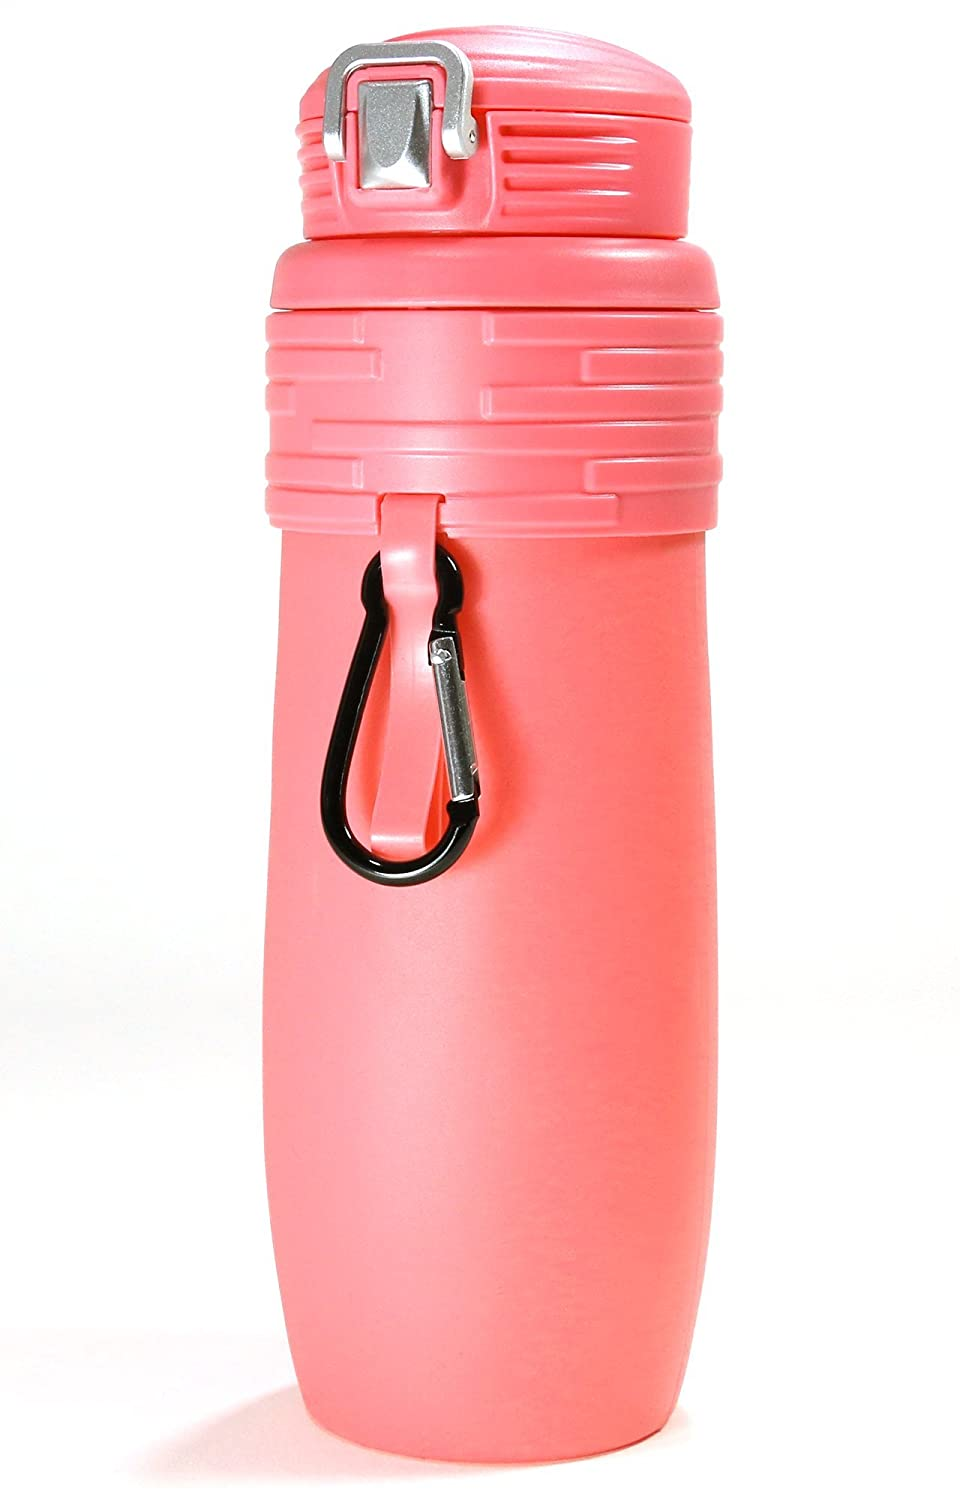 Minch Collapsible Silicone Water Bottles-17oz Leak Proof BPA Free-For Any Outdoor or Sports Activities